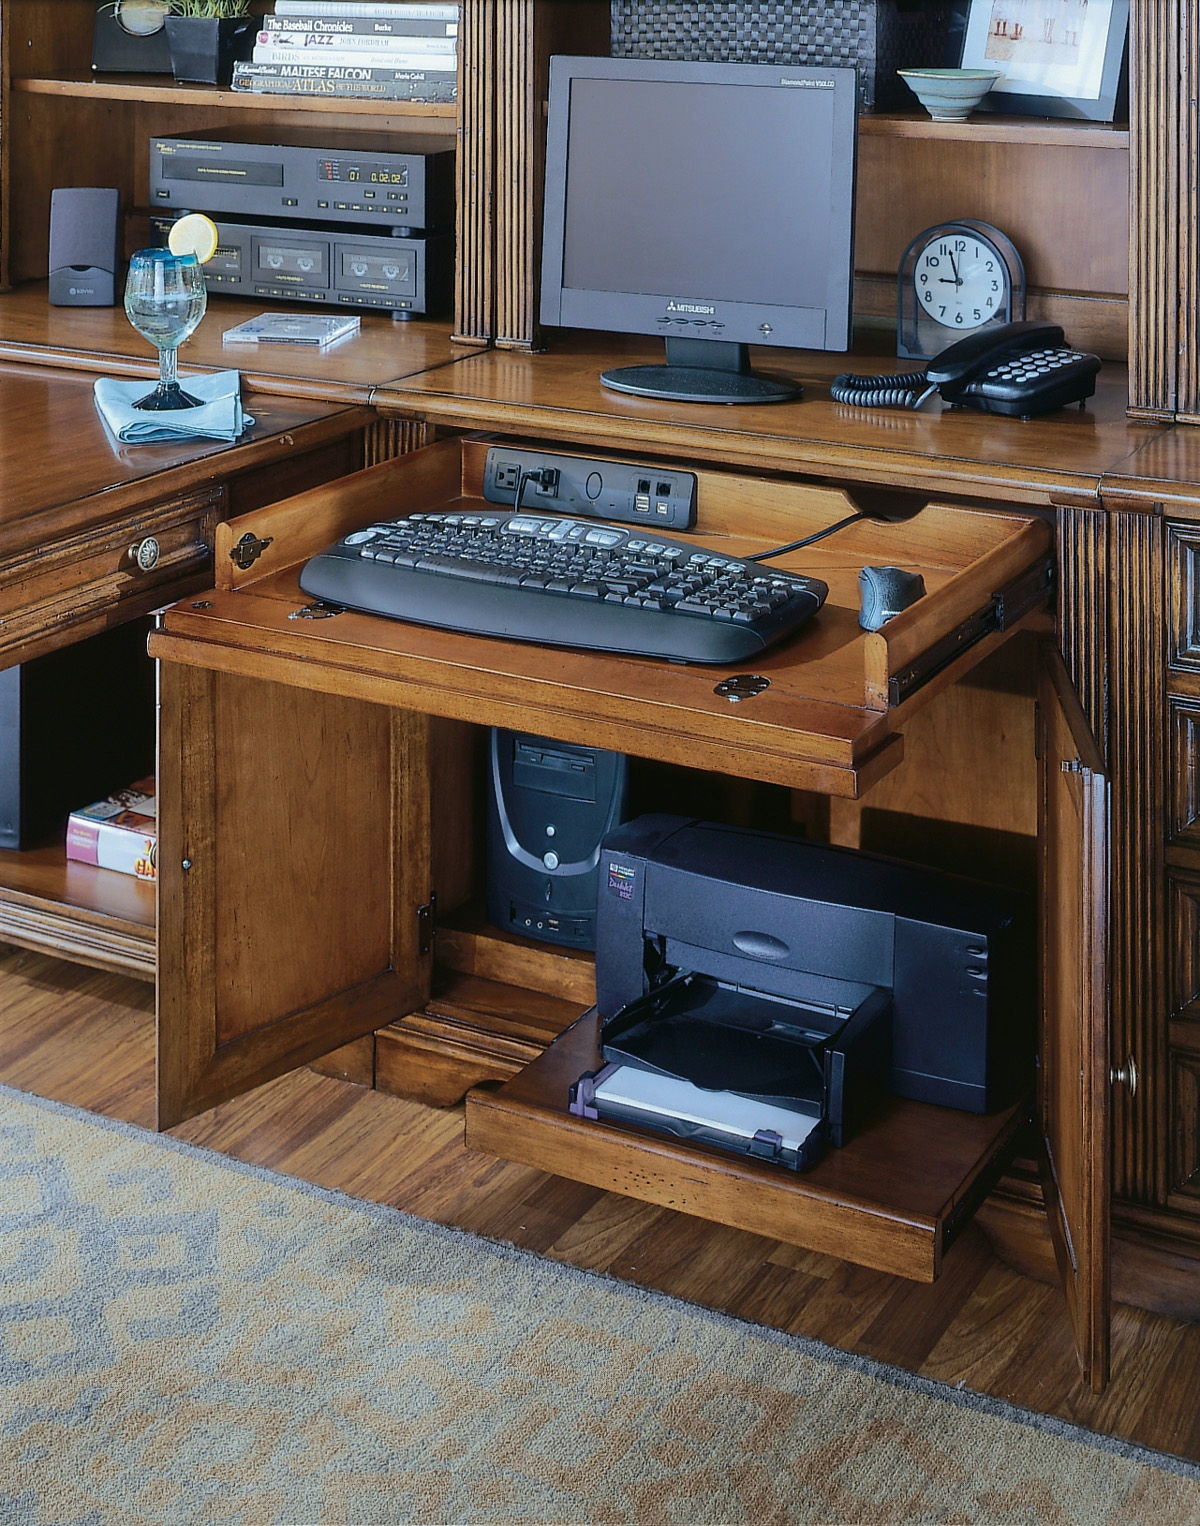 Computer Desk With Tower Compartment Zef Jam